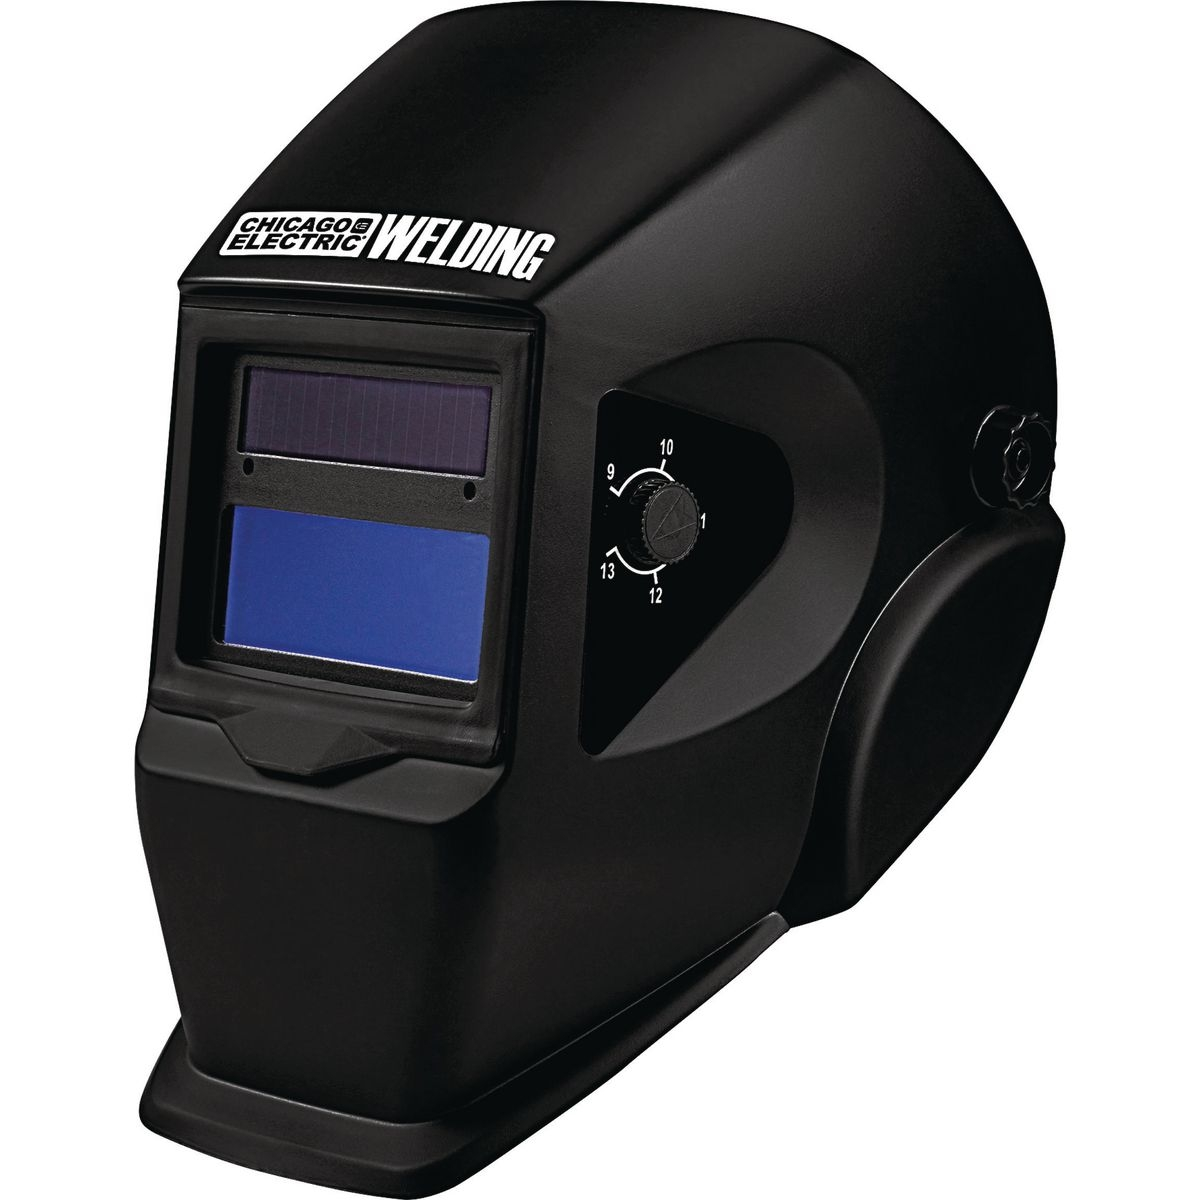 Welding helmet adjustable shade auto darkening